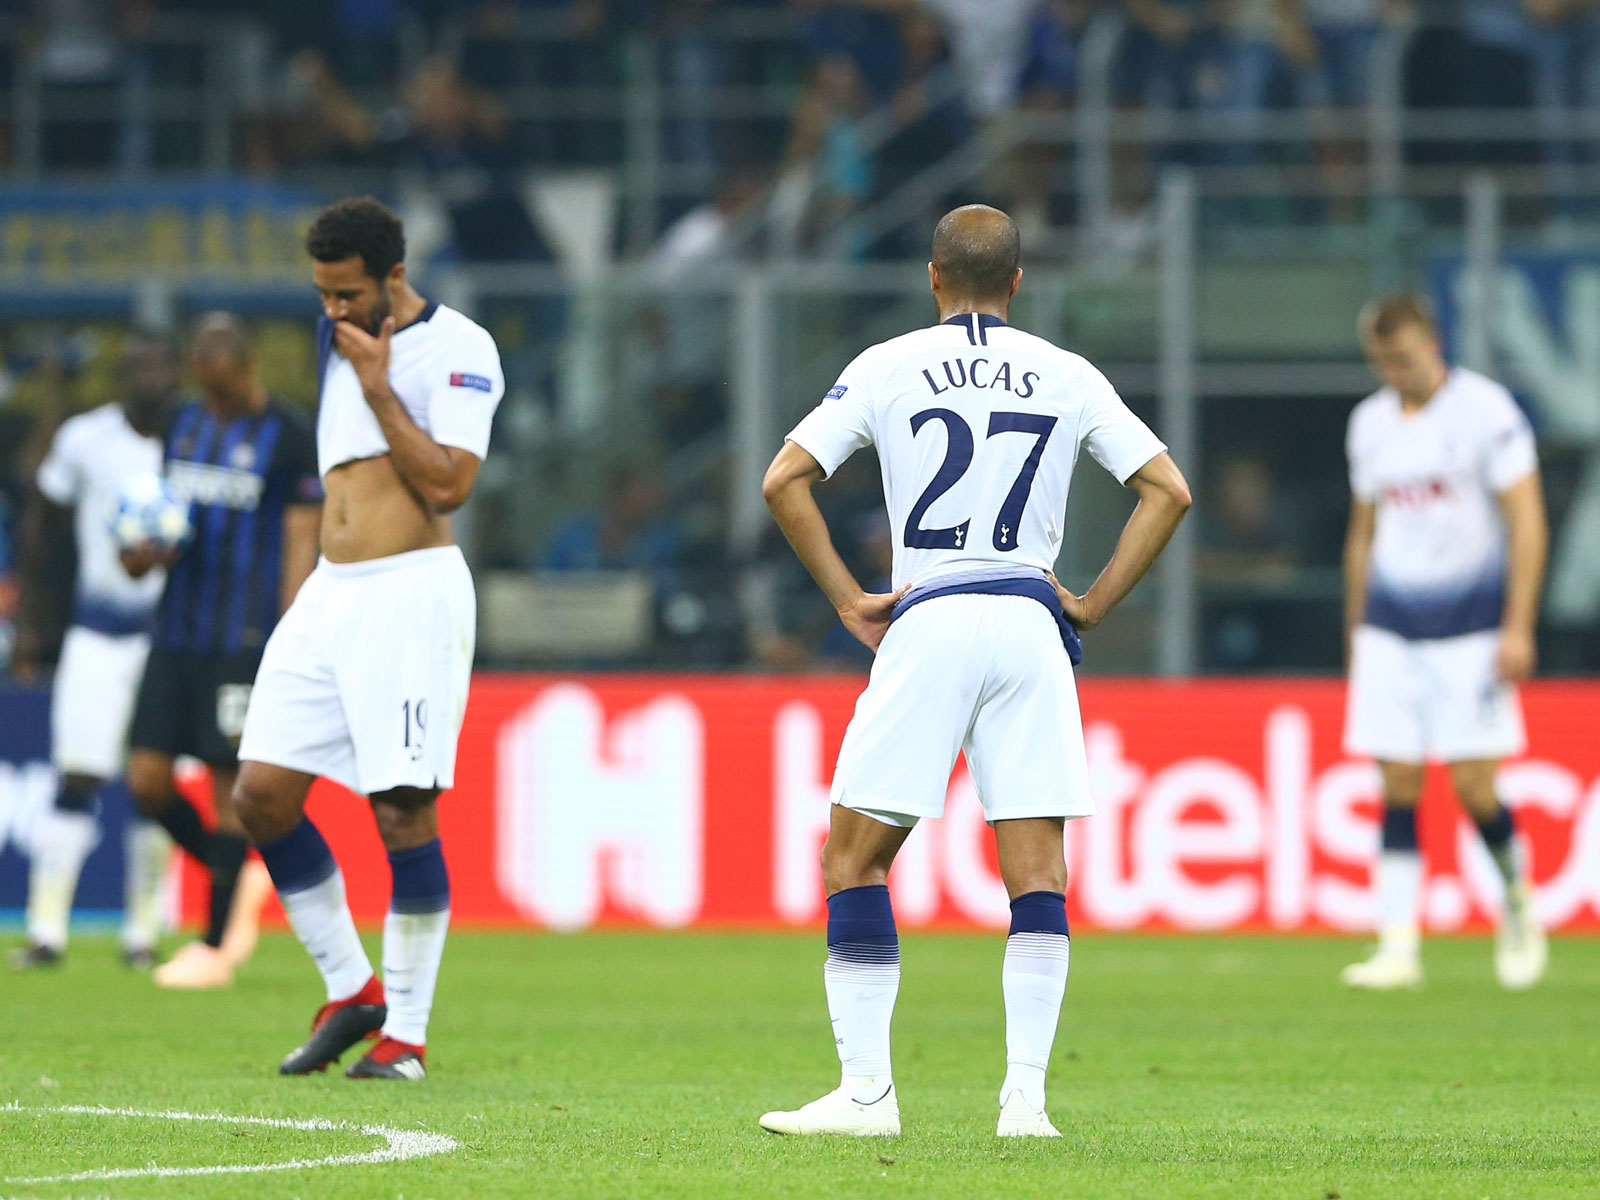 Tottenham loses to Inter Milan in Champions League